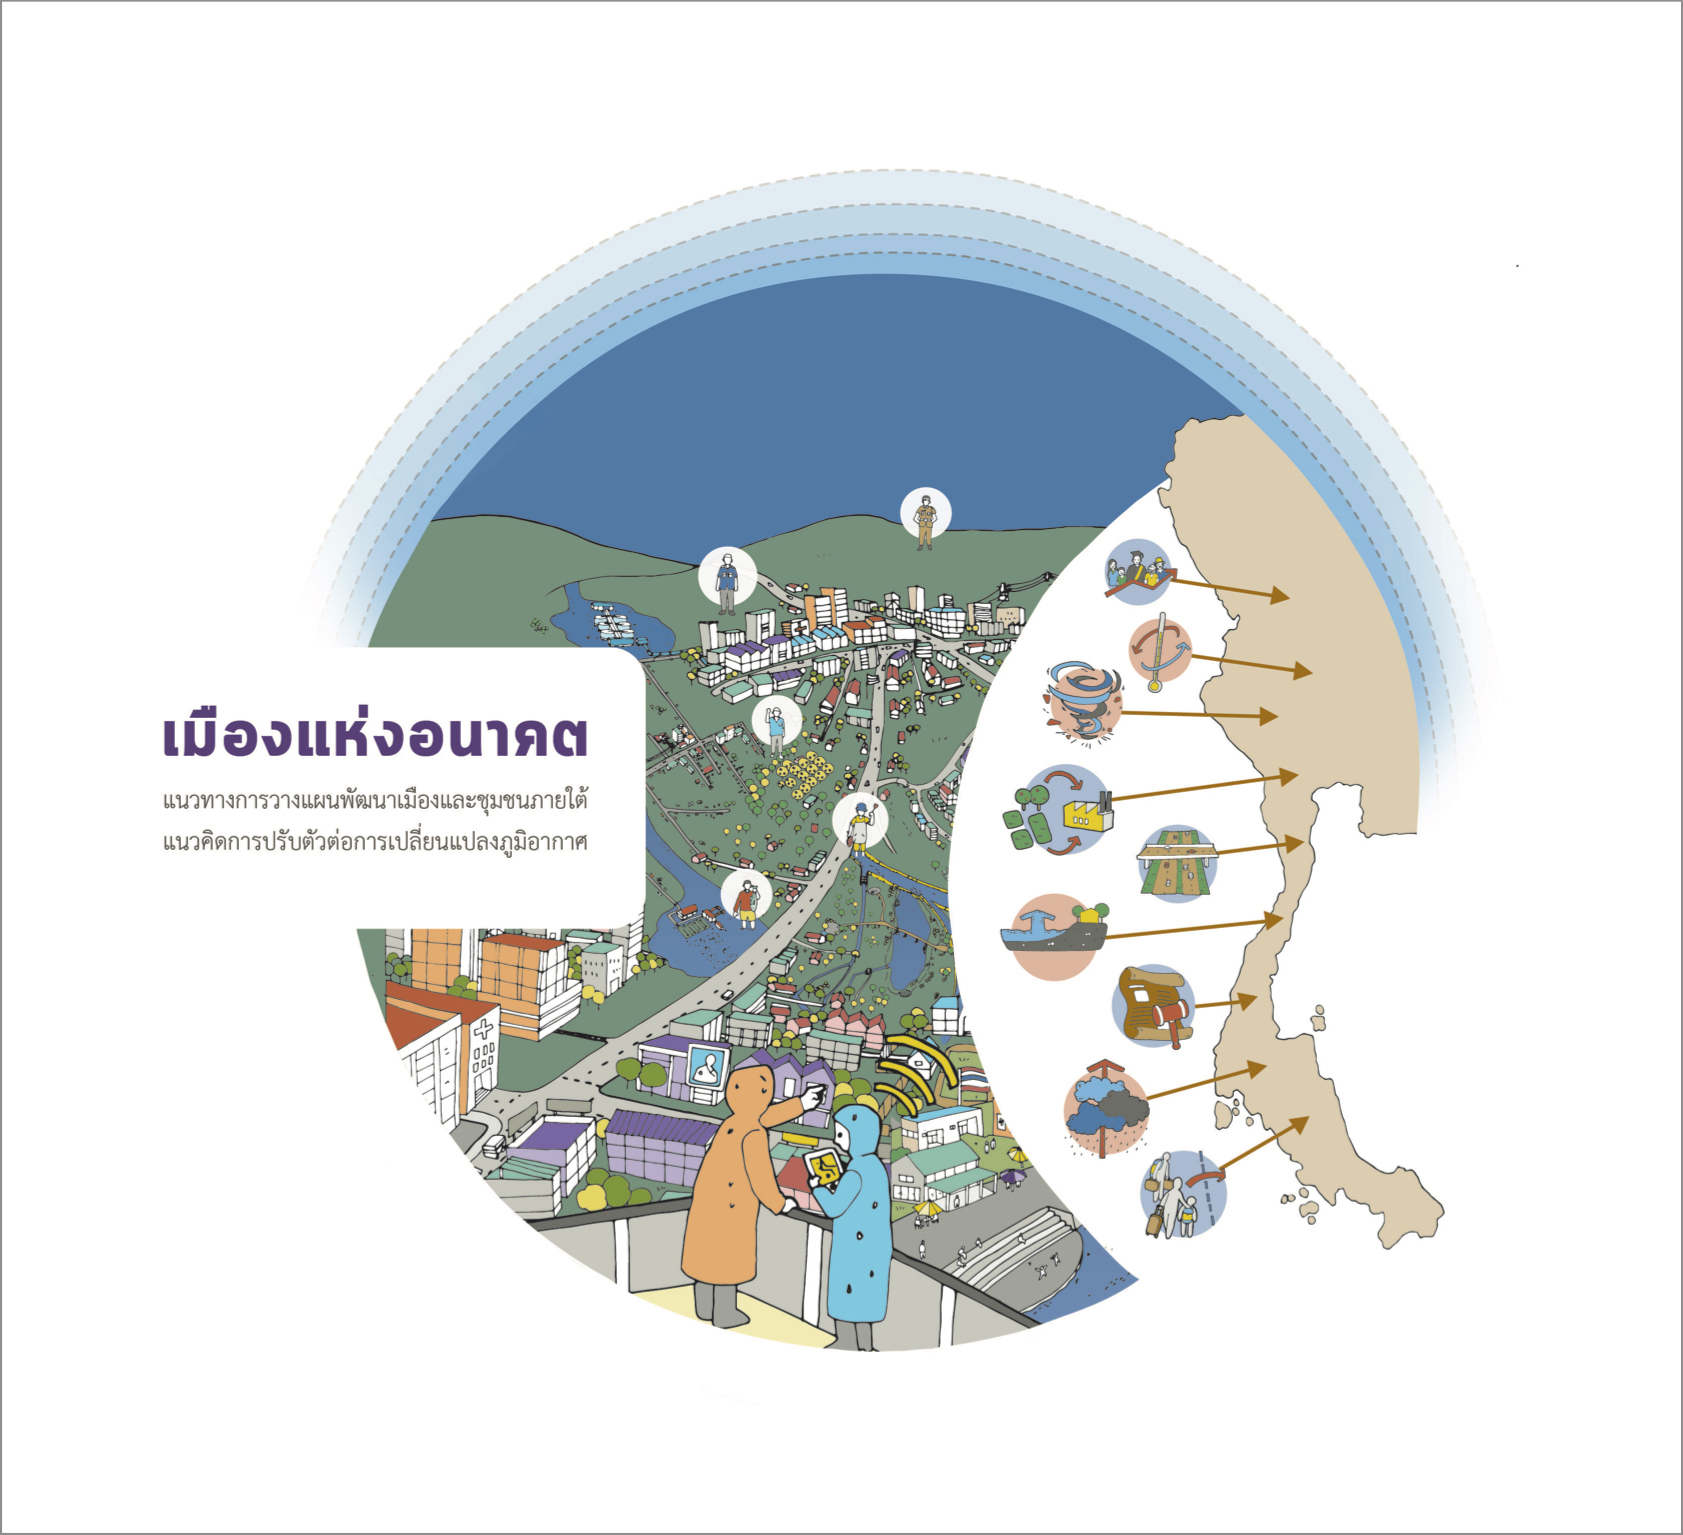 Openspace and Southeast Asia START Regional Committee—SEA START RC: City of the Future Handbook